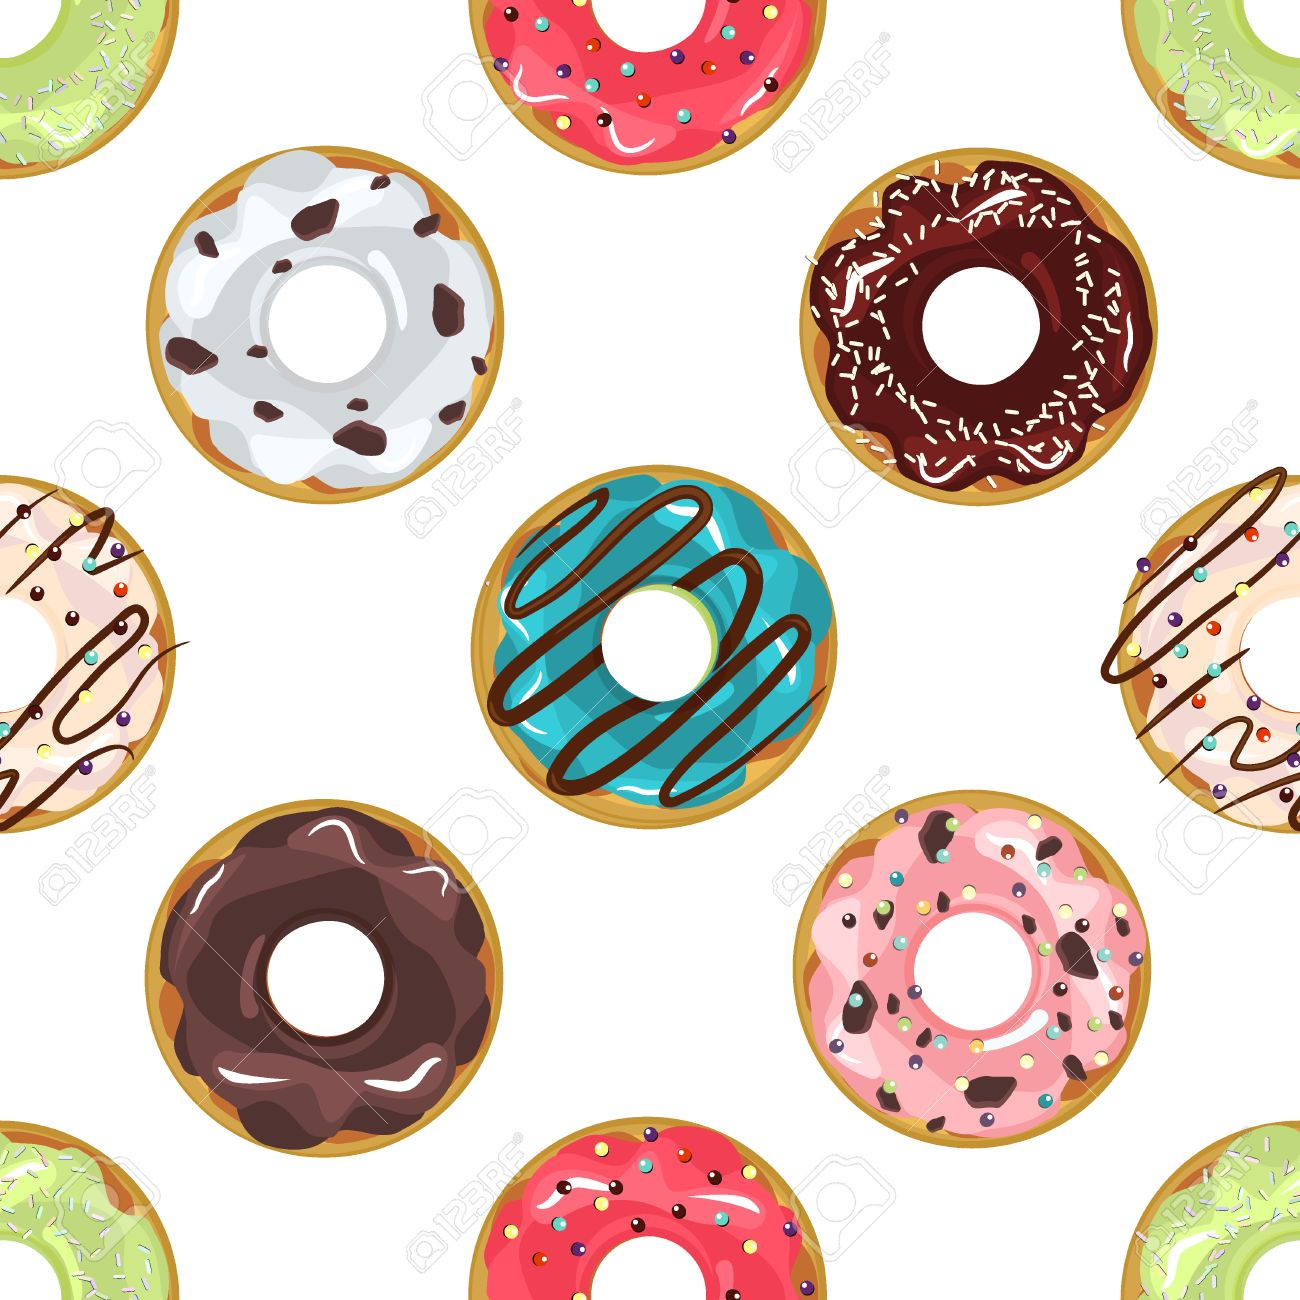 46d8b2dddf75 cute donuts with colorful glazing seamless pattern seamless .